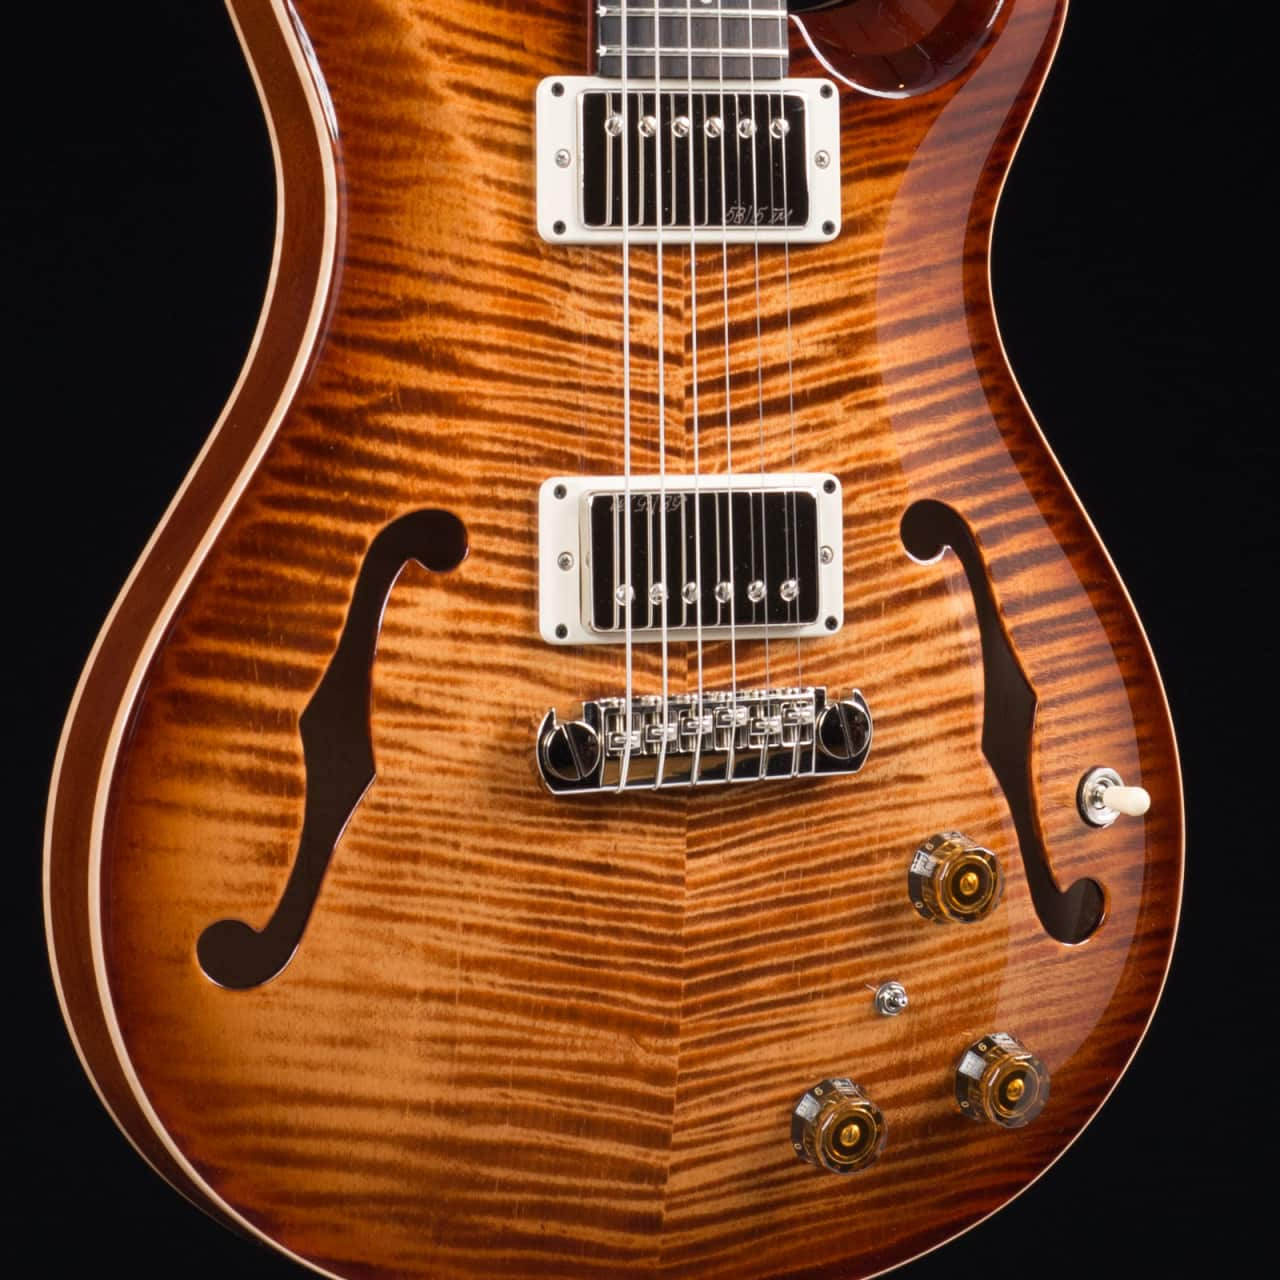 paul reed smith prs hollowbody ii piezo 10 top 3401 reverb. Black Bedroom Furniture Sets. Home Design Ideas